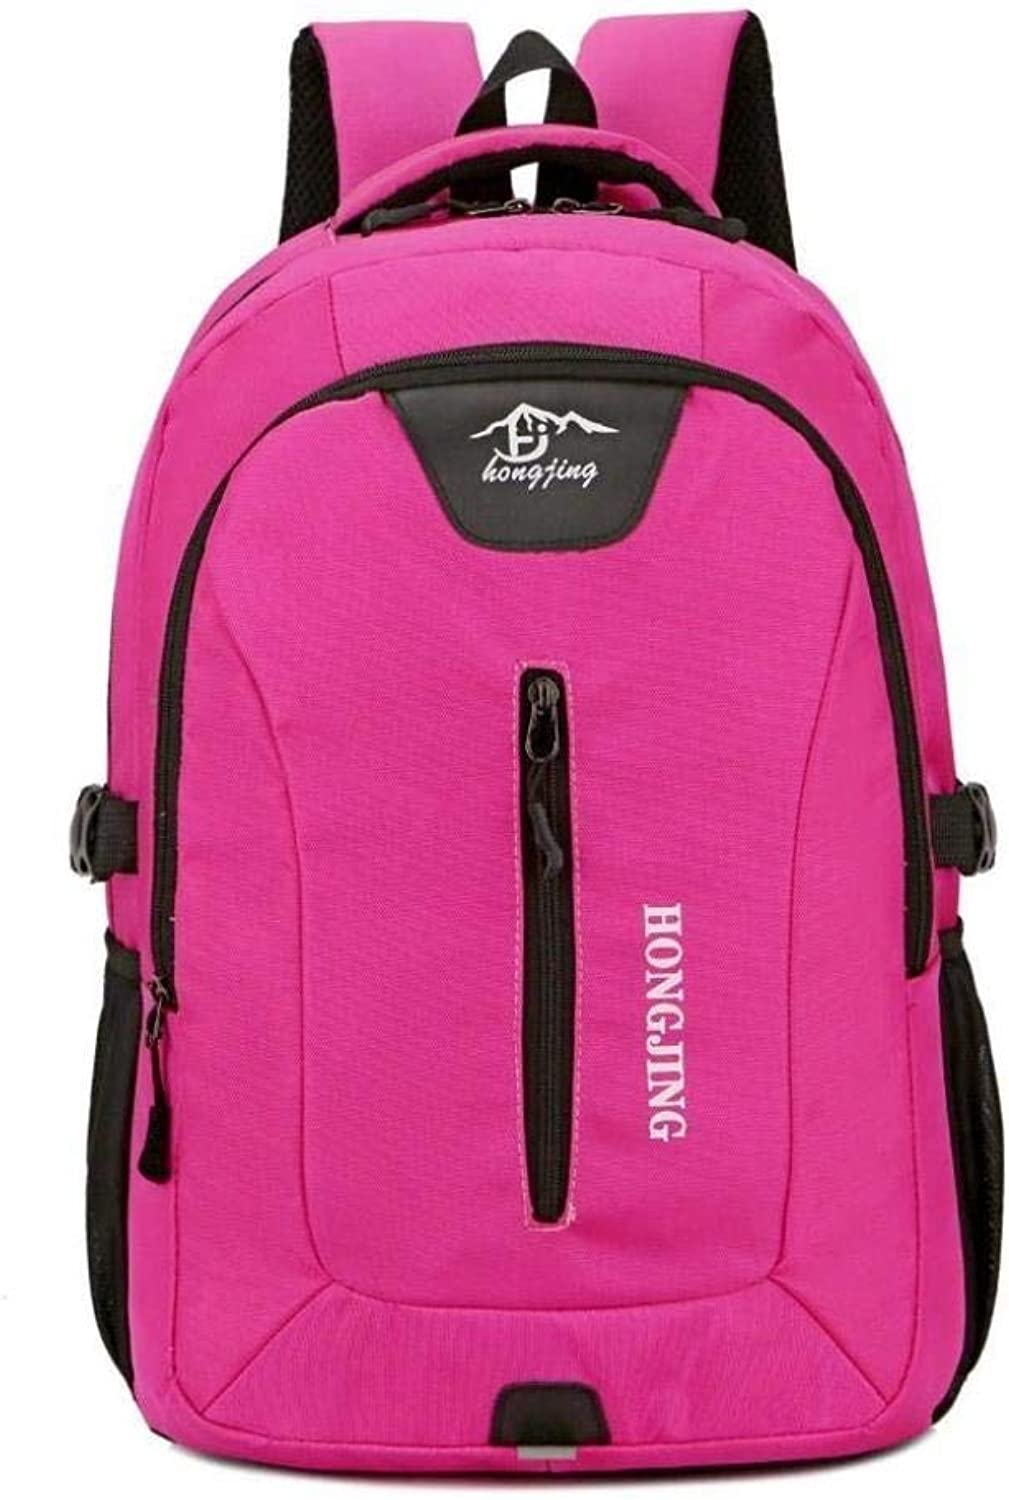 Large-Capacity Travel Backpack Sports and Leisure Students Shoulder Bag ZXMDMZ (color   A)